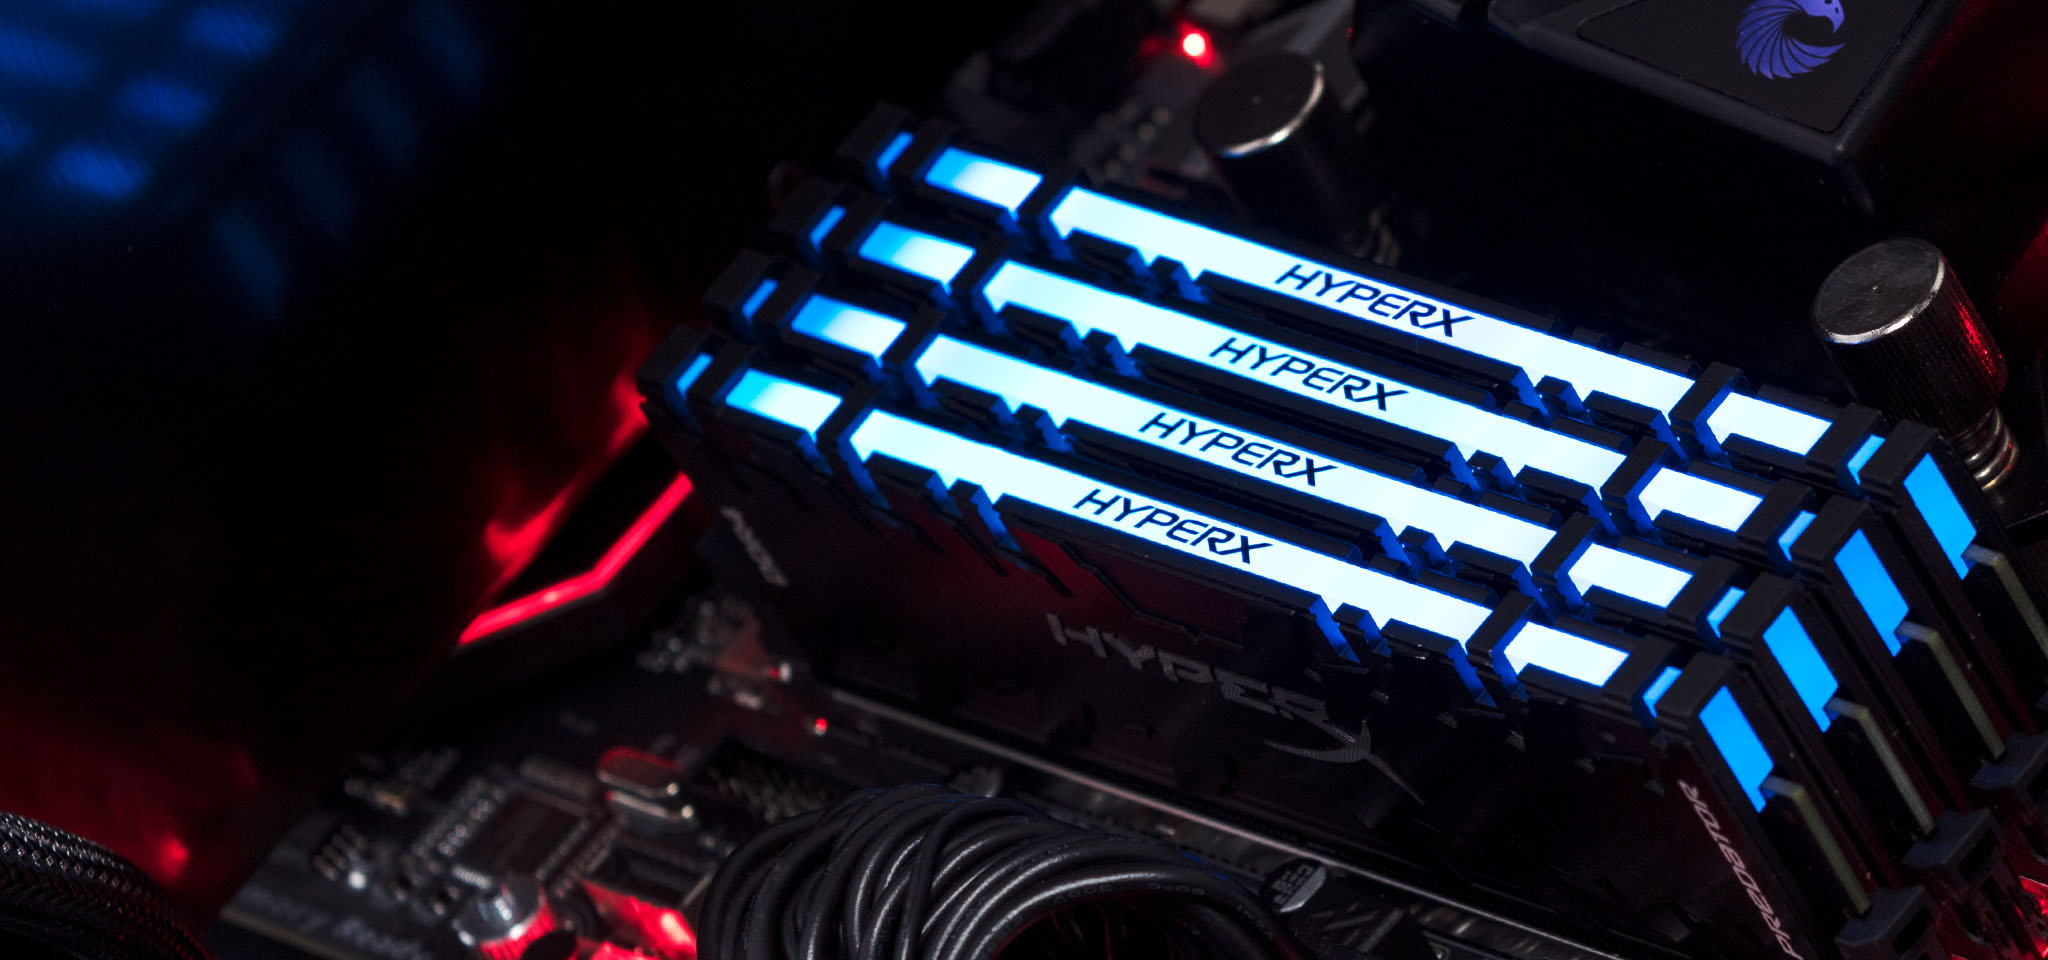 DDR3 and DDR4 RAM - Memory Upgrade | HyperX